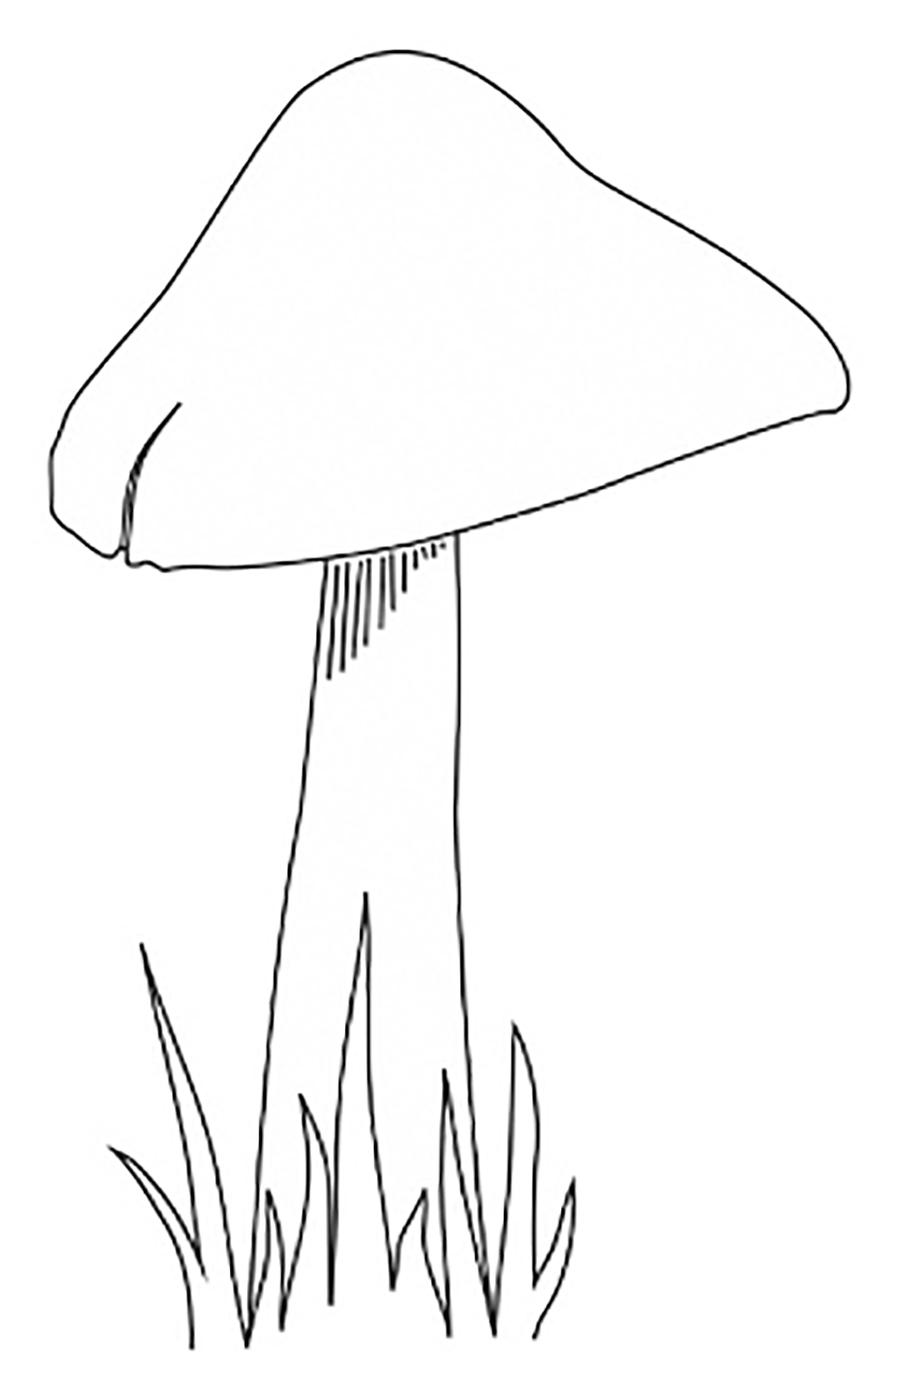 Coloring Pattern fungus mushroom on a thin stalk for cutting paper